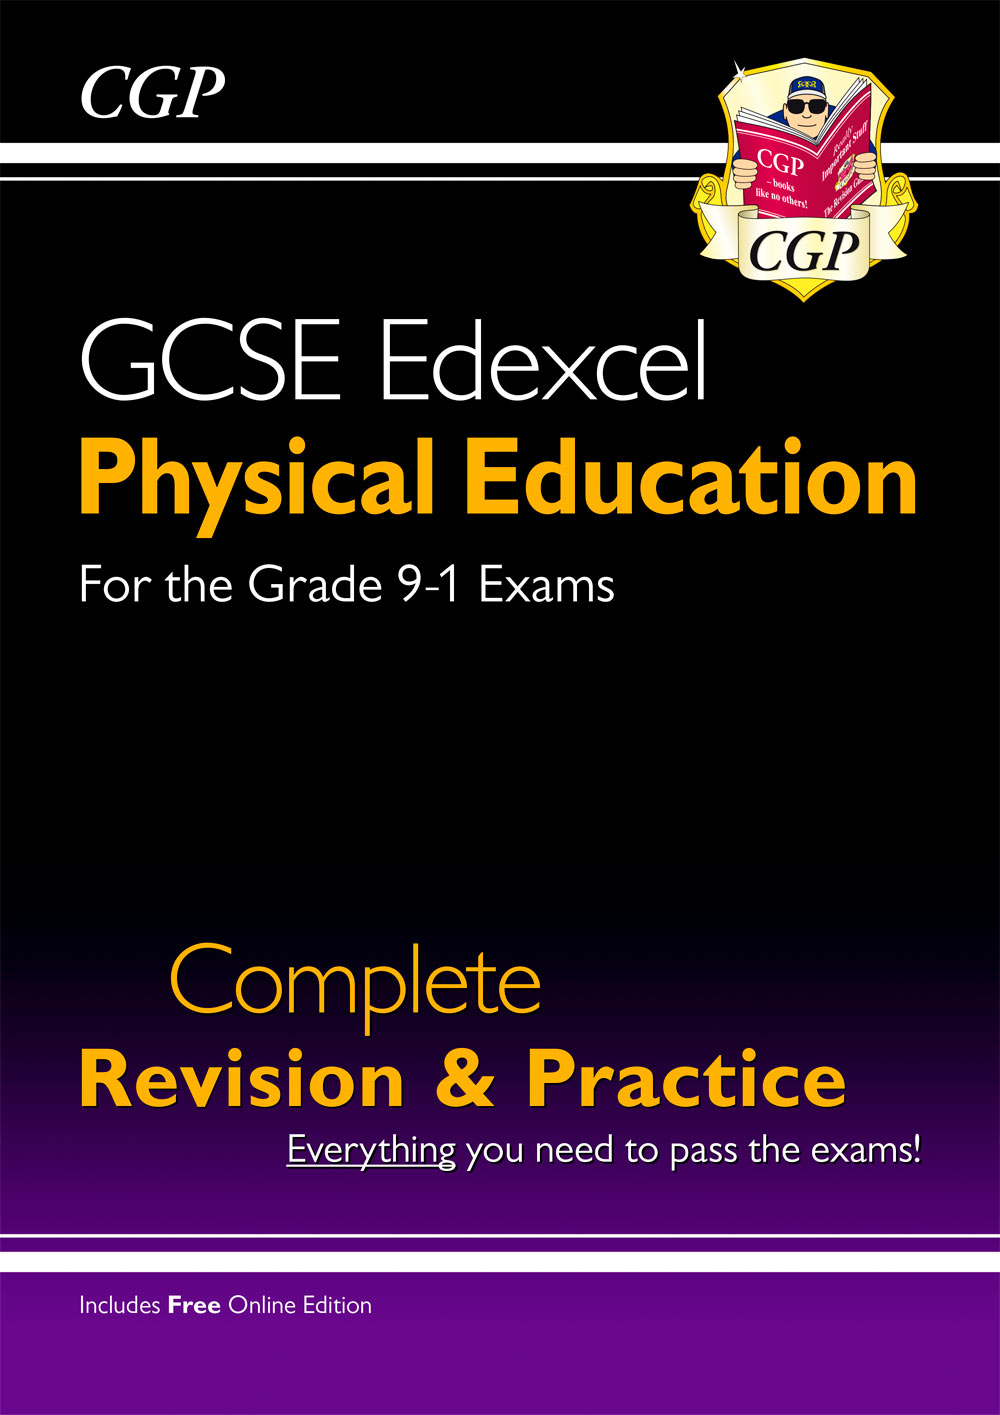 JES41 - New Grade 9-1 GCSE Physical Education Edexcel Complete Revision & Practice (with Online Edit